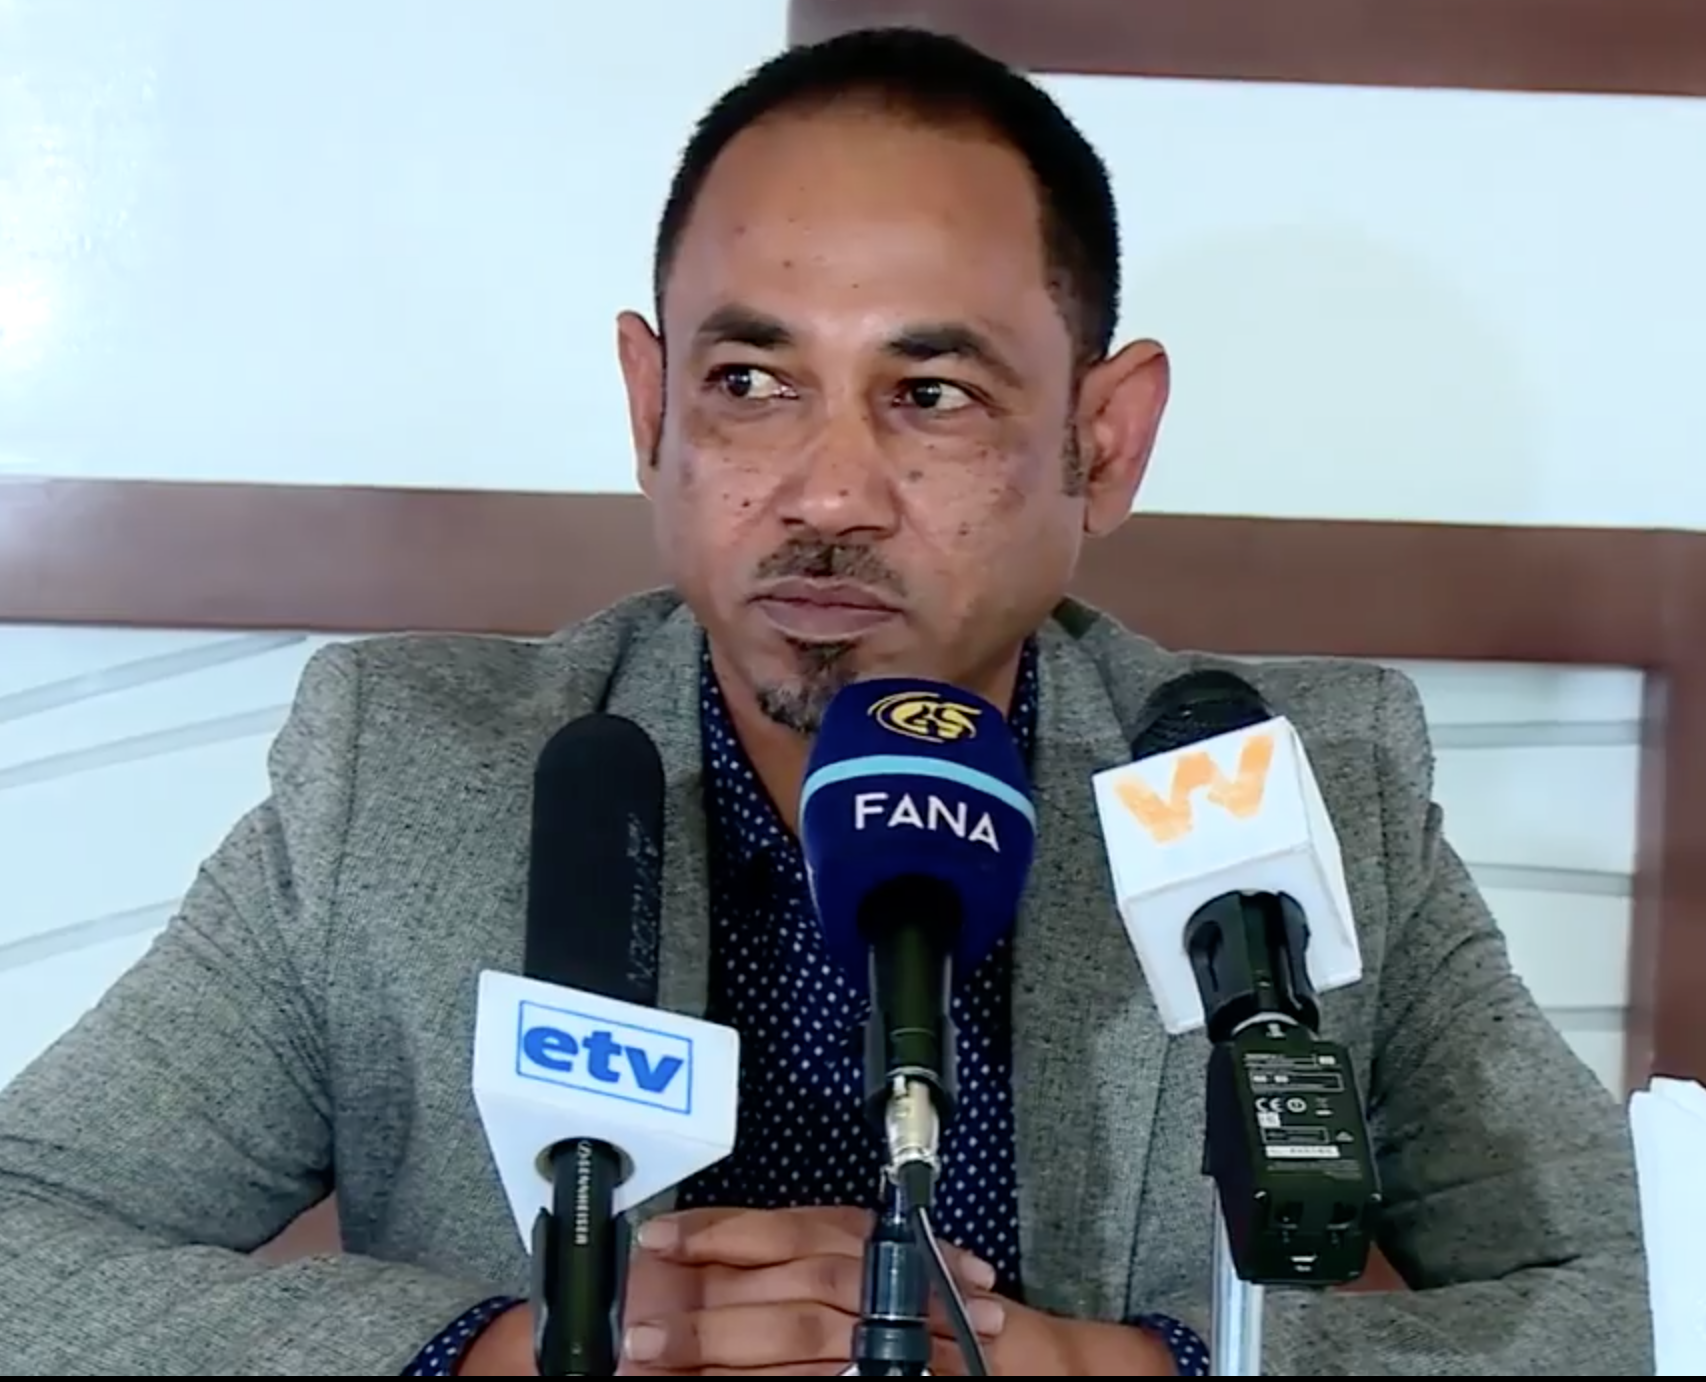 Ethiopian army, Eritrea and Amhara forces destroyed Tigray's 30-year development, says interim official